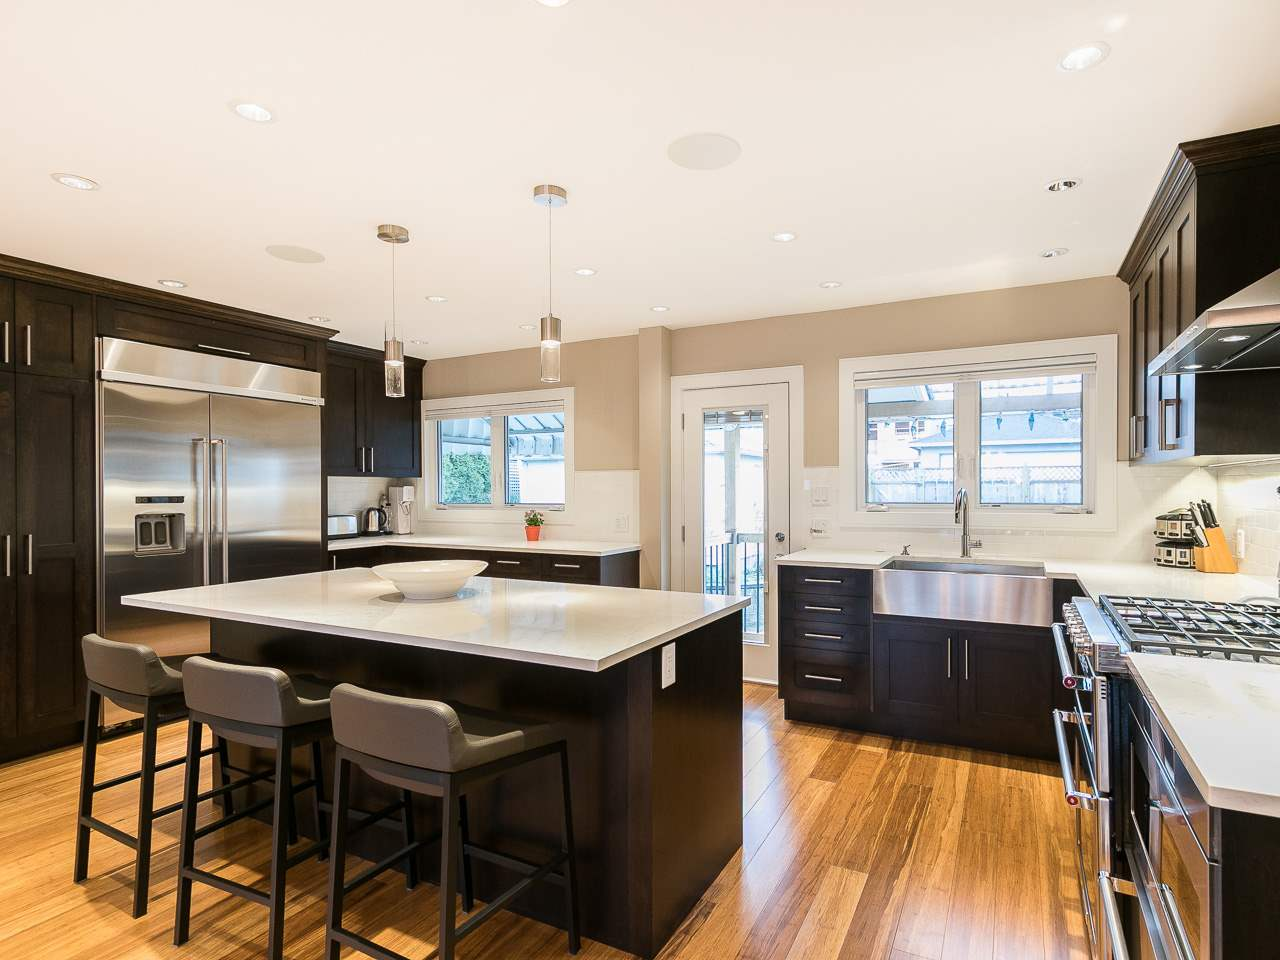 One of the best homes in one of Vancouver?s trendiest areas ? on a 44ft extra wide lot in Fraserhood, through the red door, you?ll be awed setting foot in a renovation truly built for the homeowner. Big windows naturally light the solid bamboo floors & gas fireplace highlighted by the enormous chef?s kitchen w/ 7-ft island incl. wine fridge, 5-burner stove, & custom cabinetry. The large backyard w/ hot tub, gas hookup & planter boxes creates your own private oasis and the furnished suite rented at $2k serves as a great mortgage helper. Other luxury finishes include: Integr. Sonos system, single garage converted into insulated gym & radiant heating. Exceptionally maintained: new plumbing, electrical, hot water tank, rear drainage, roof & windows. This home is not a nice to have - ITS A MUST